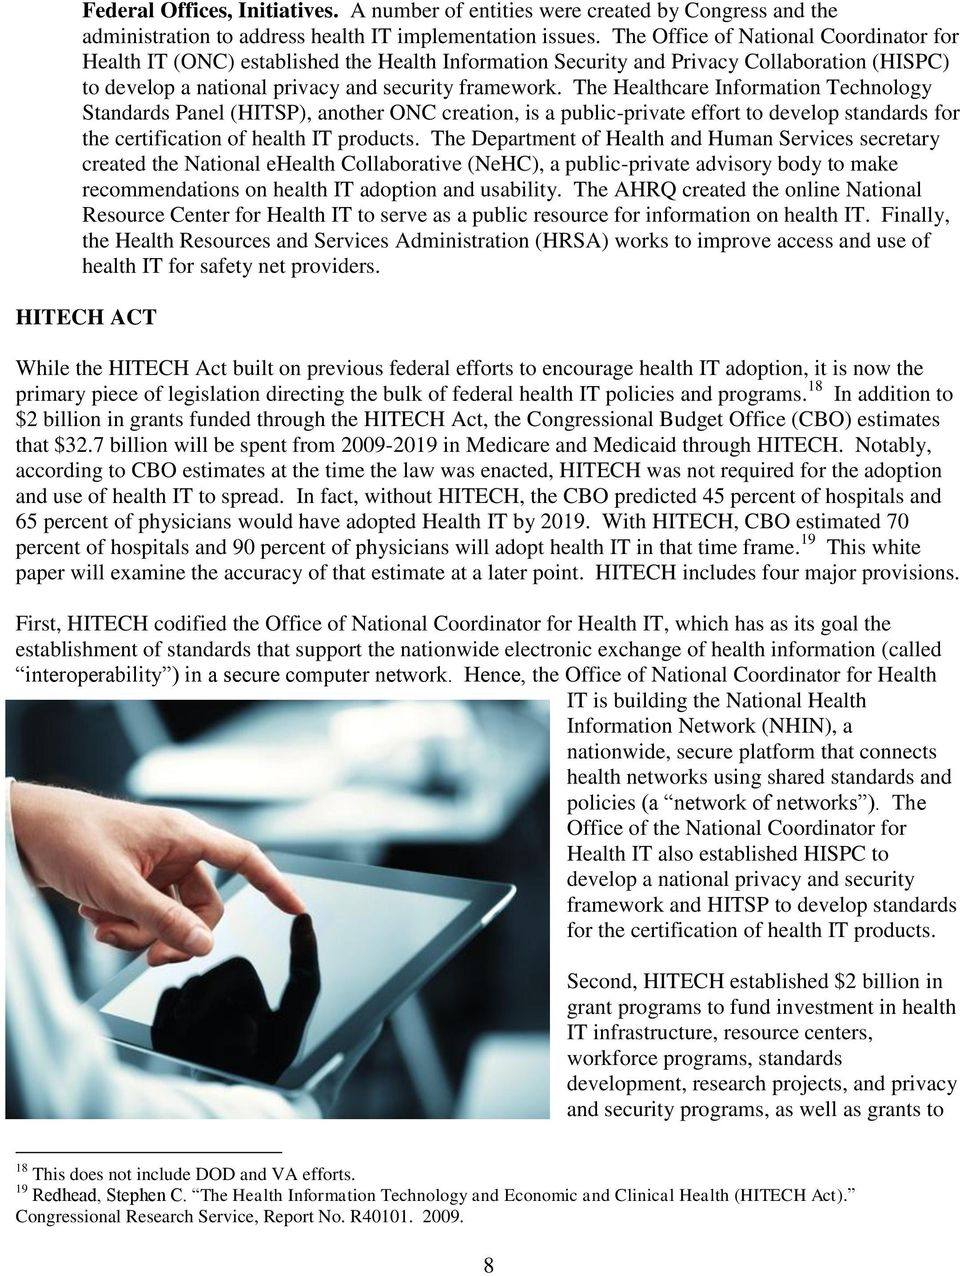 The Healthcare Information Technology Standards Panel (HITSP), another ONC creation, is a public-private effort to develop standards for the certification of health IT products.